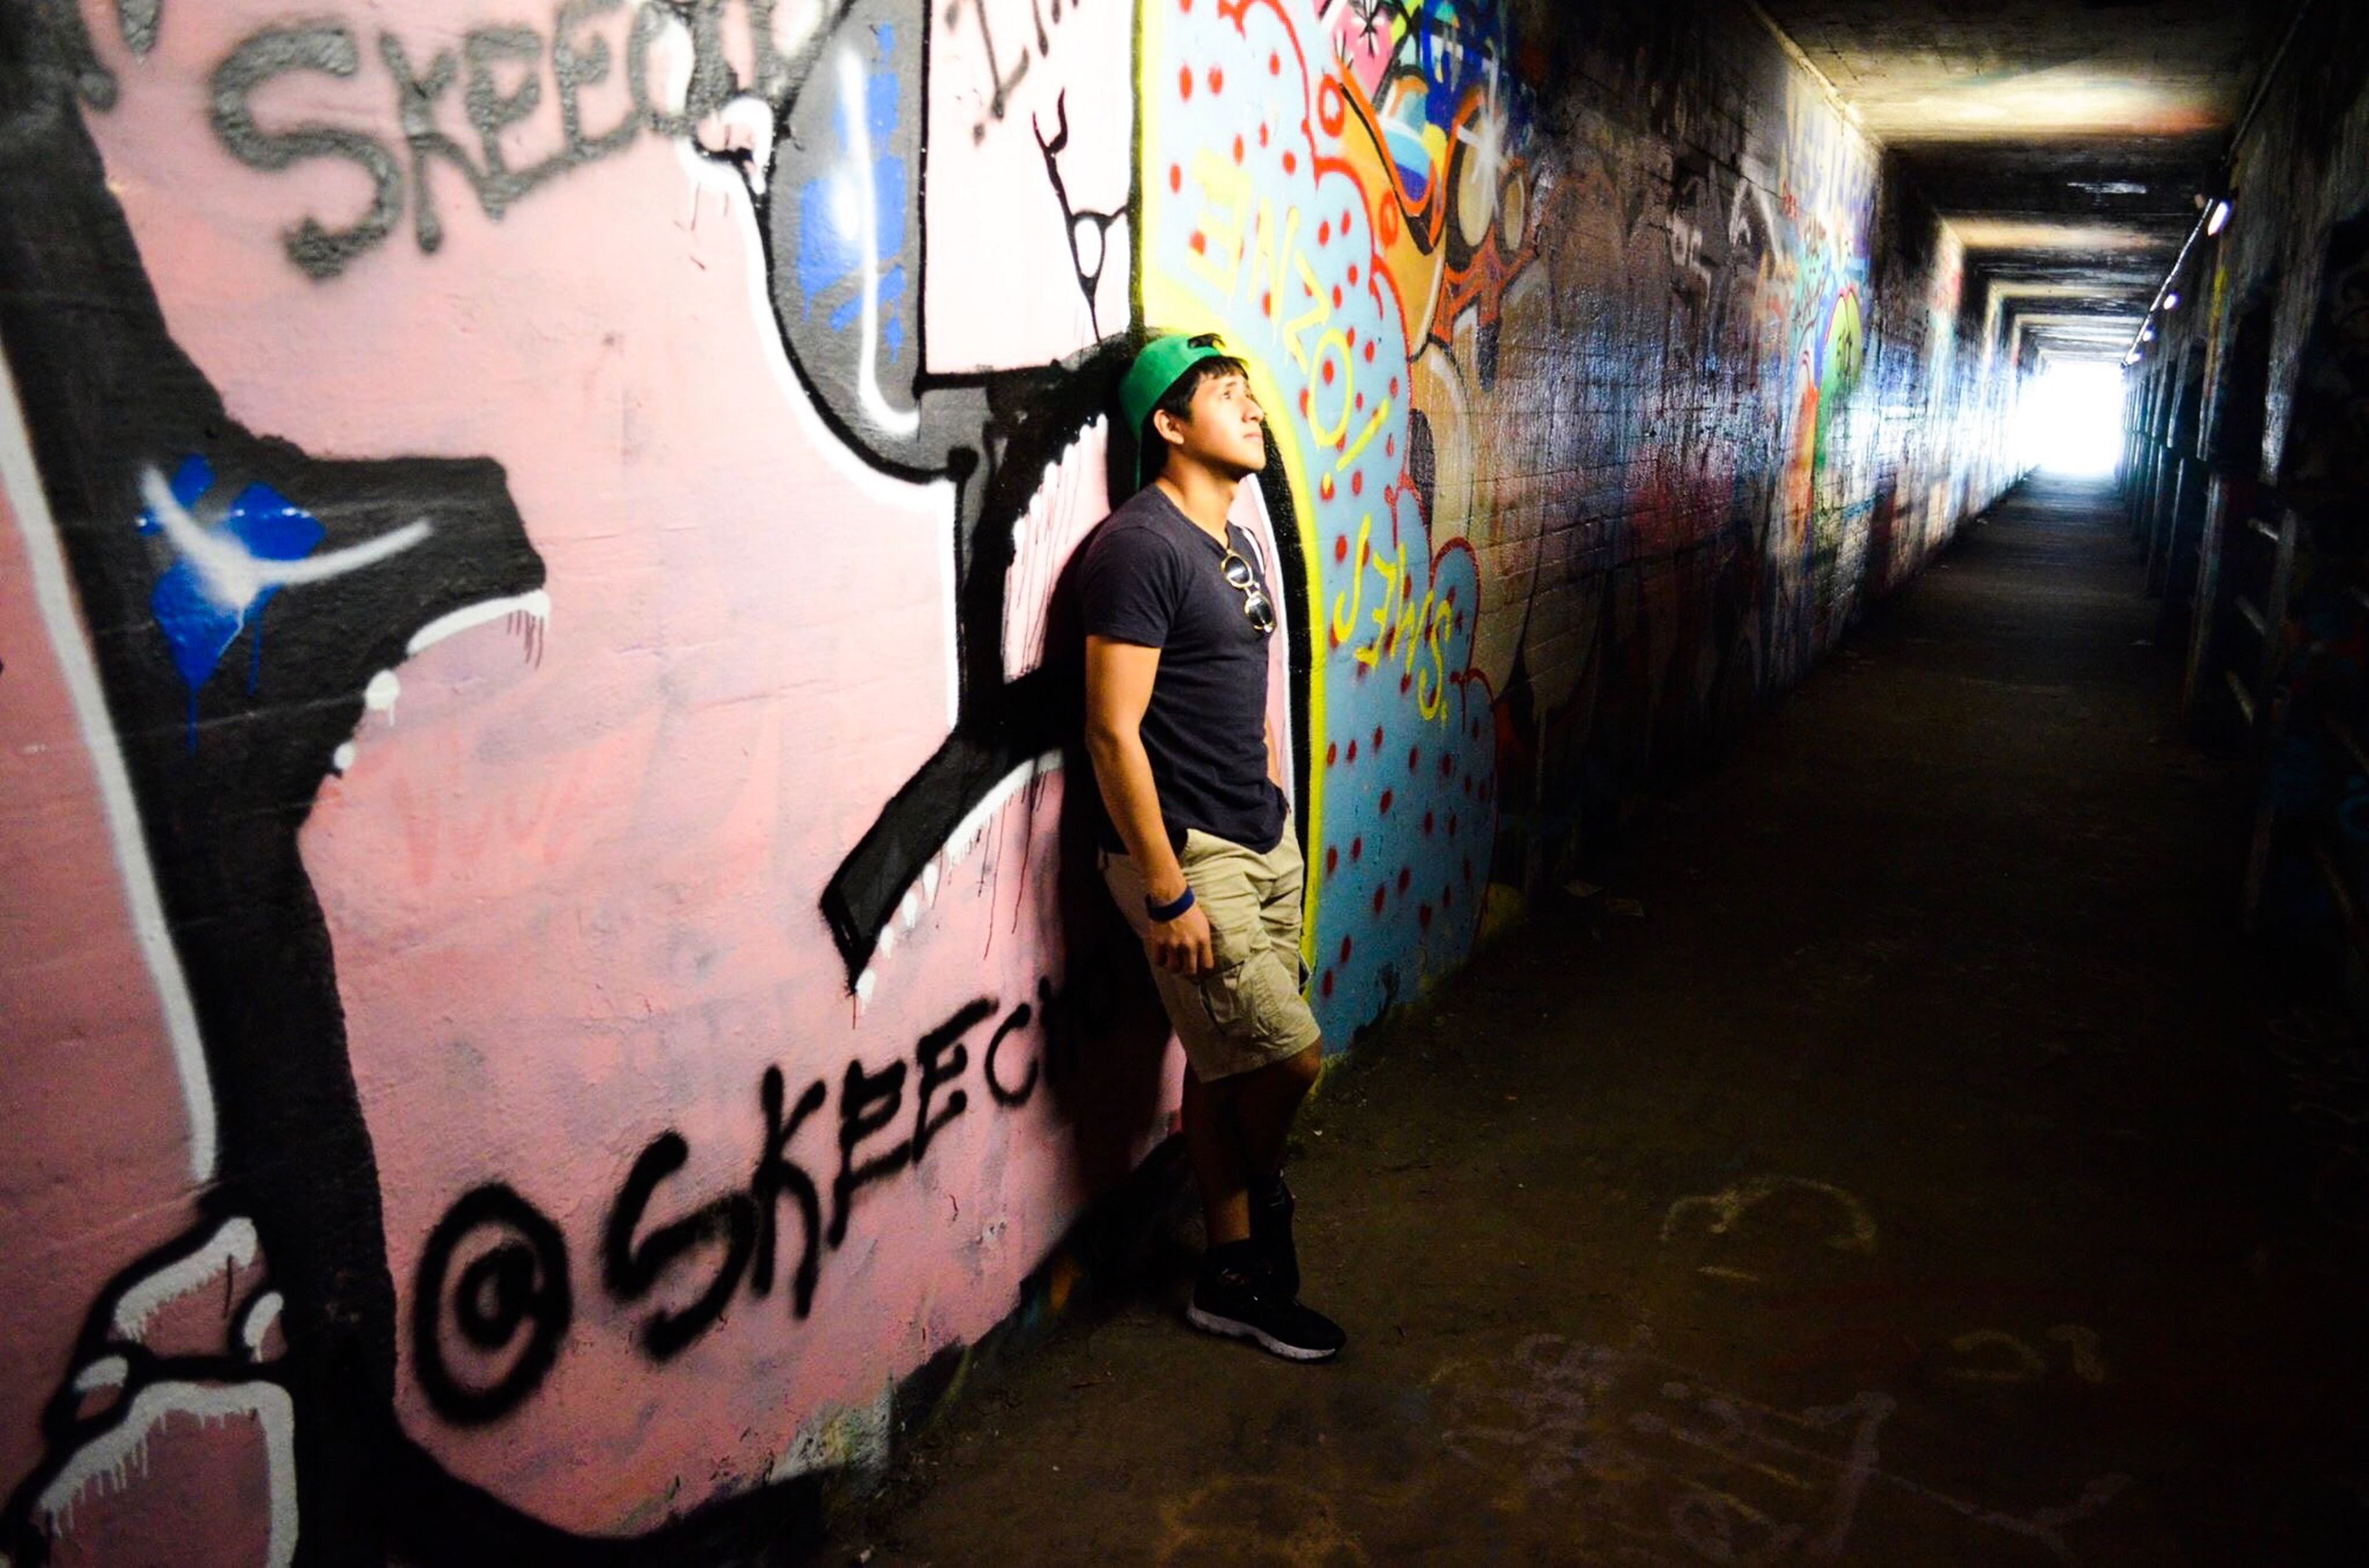 graffiti, one person, real people, night, walking, one woman only, adults only, adult, women, lifestyles, young adult, people, spray paint, outdoors, only women, young women, one young woman only